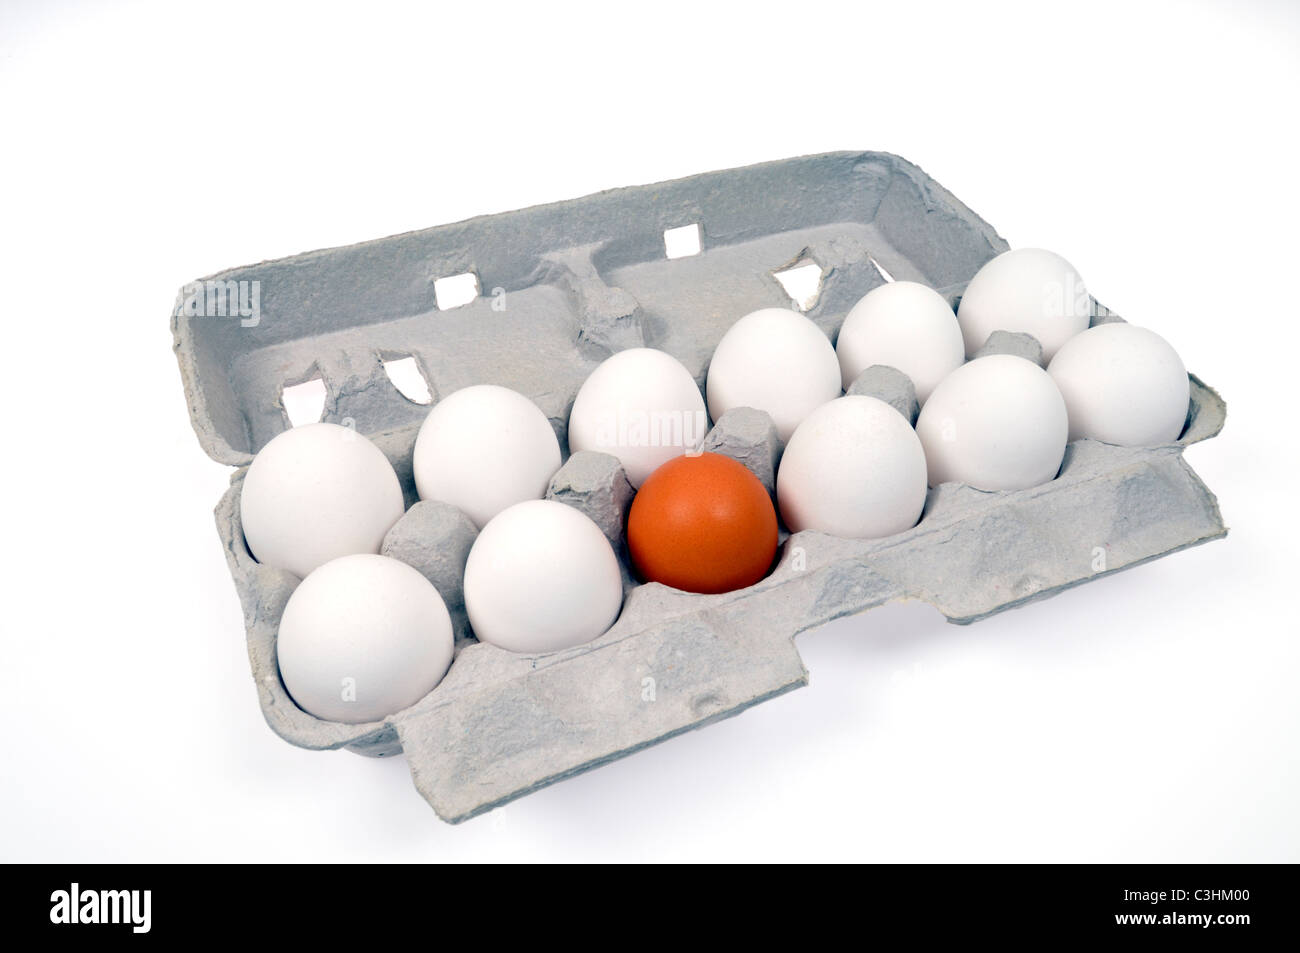 Concept of alienation and discrimination using 11 white and 1 single brown eggs in carton, white background. - Stock Image